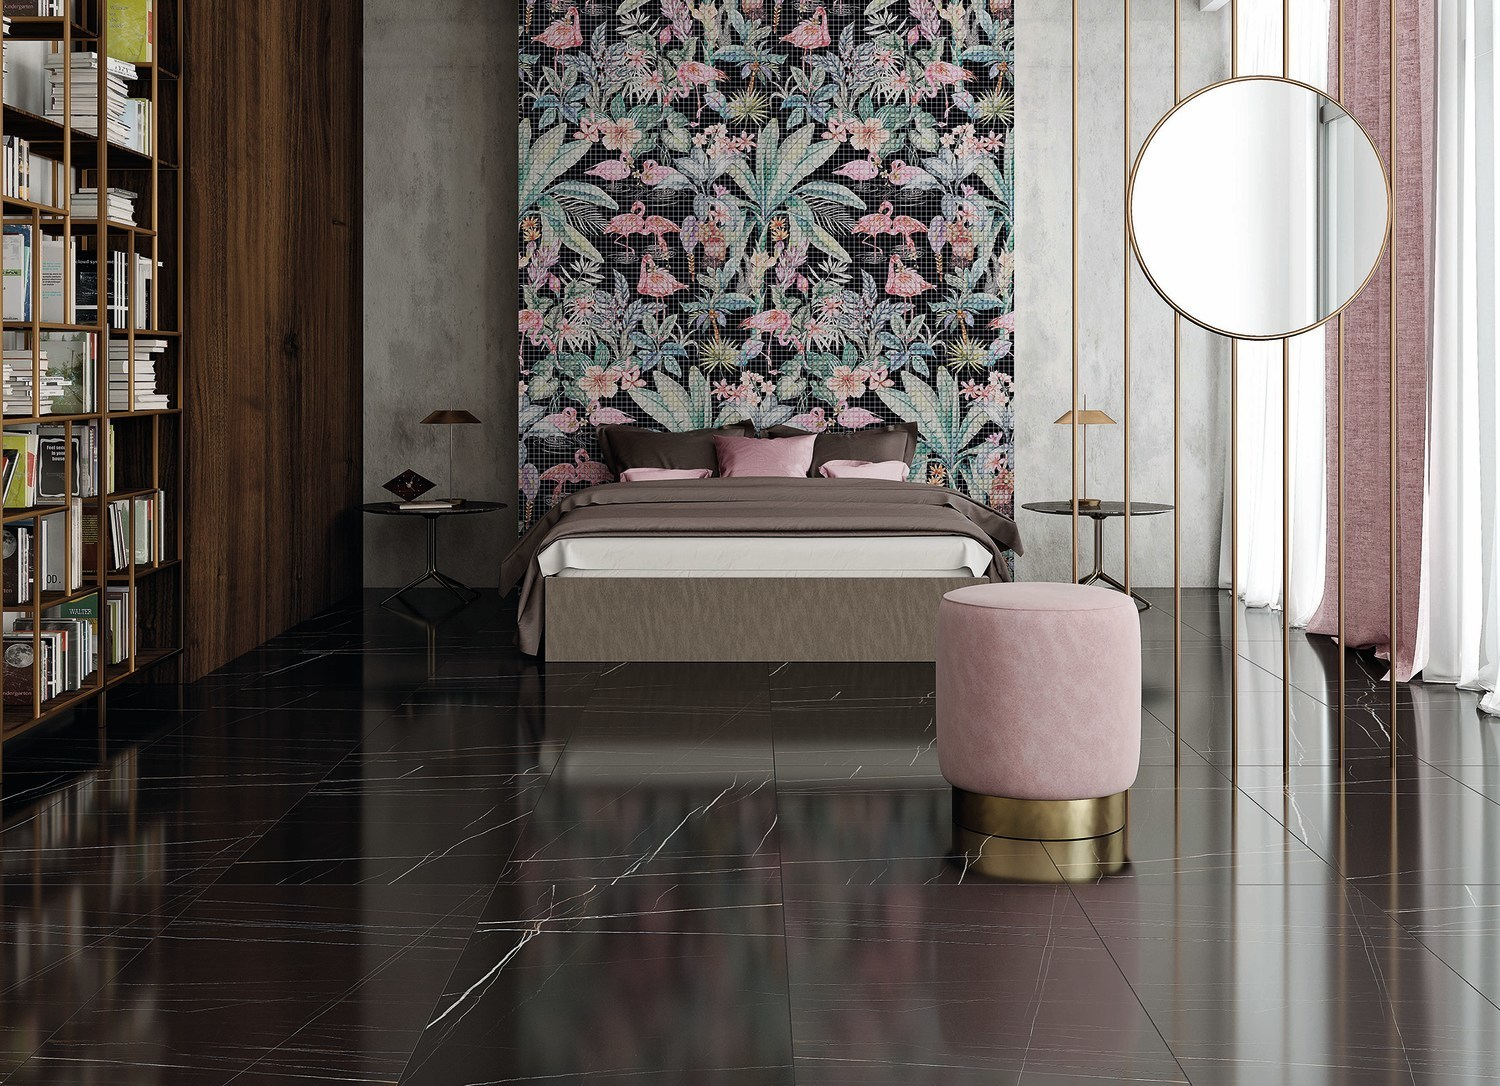 Tile Of Spain Companies Present Latest Designs During A Record Breaking Edition Of Cevisama